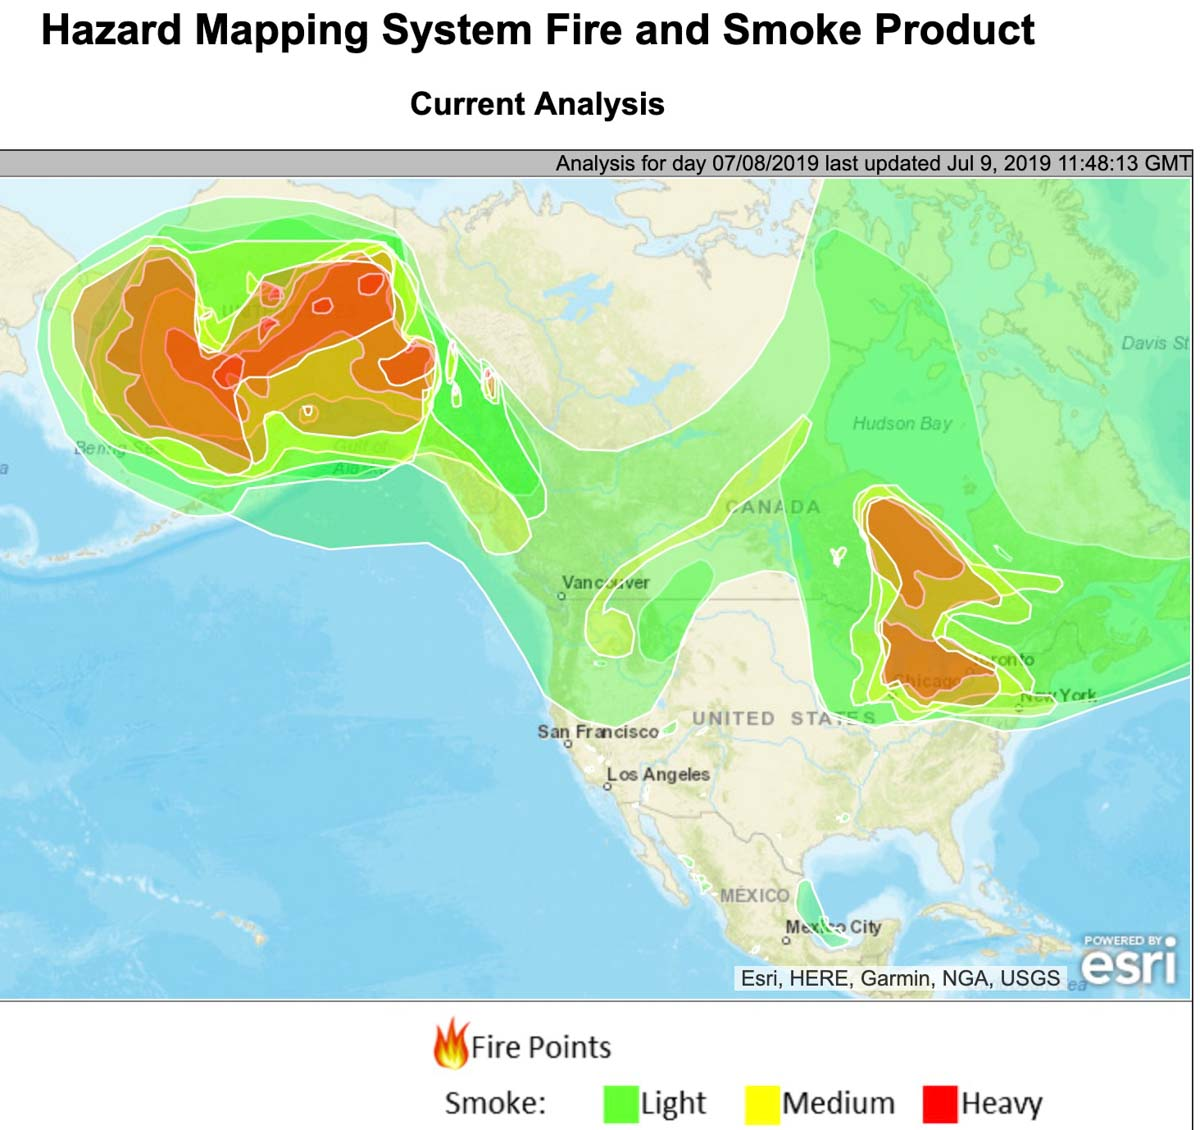 Wildfires produce heavy smoke in Alaska, Canada, and the ... on show map of northern florida, lumberjack show ketchikan alaska, show map washington, show map of denver, show map of appalachian mountains, show map of district of columbia, show map of oahu hawaii, show map of south jersey, show map of omaha, large map alaska, show map of greenland, all water map in alaska, show map of south texas, us map alaska, show map of canada, show map of baltimore, show map of southwest florida, show map of charlotte, show map of miami, show map of calif,